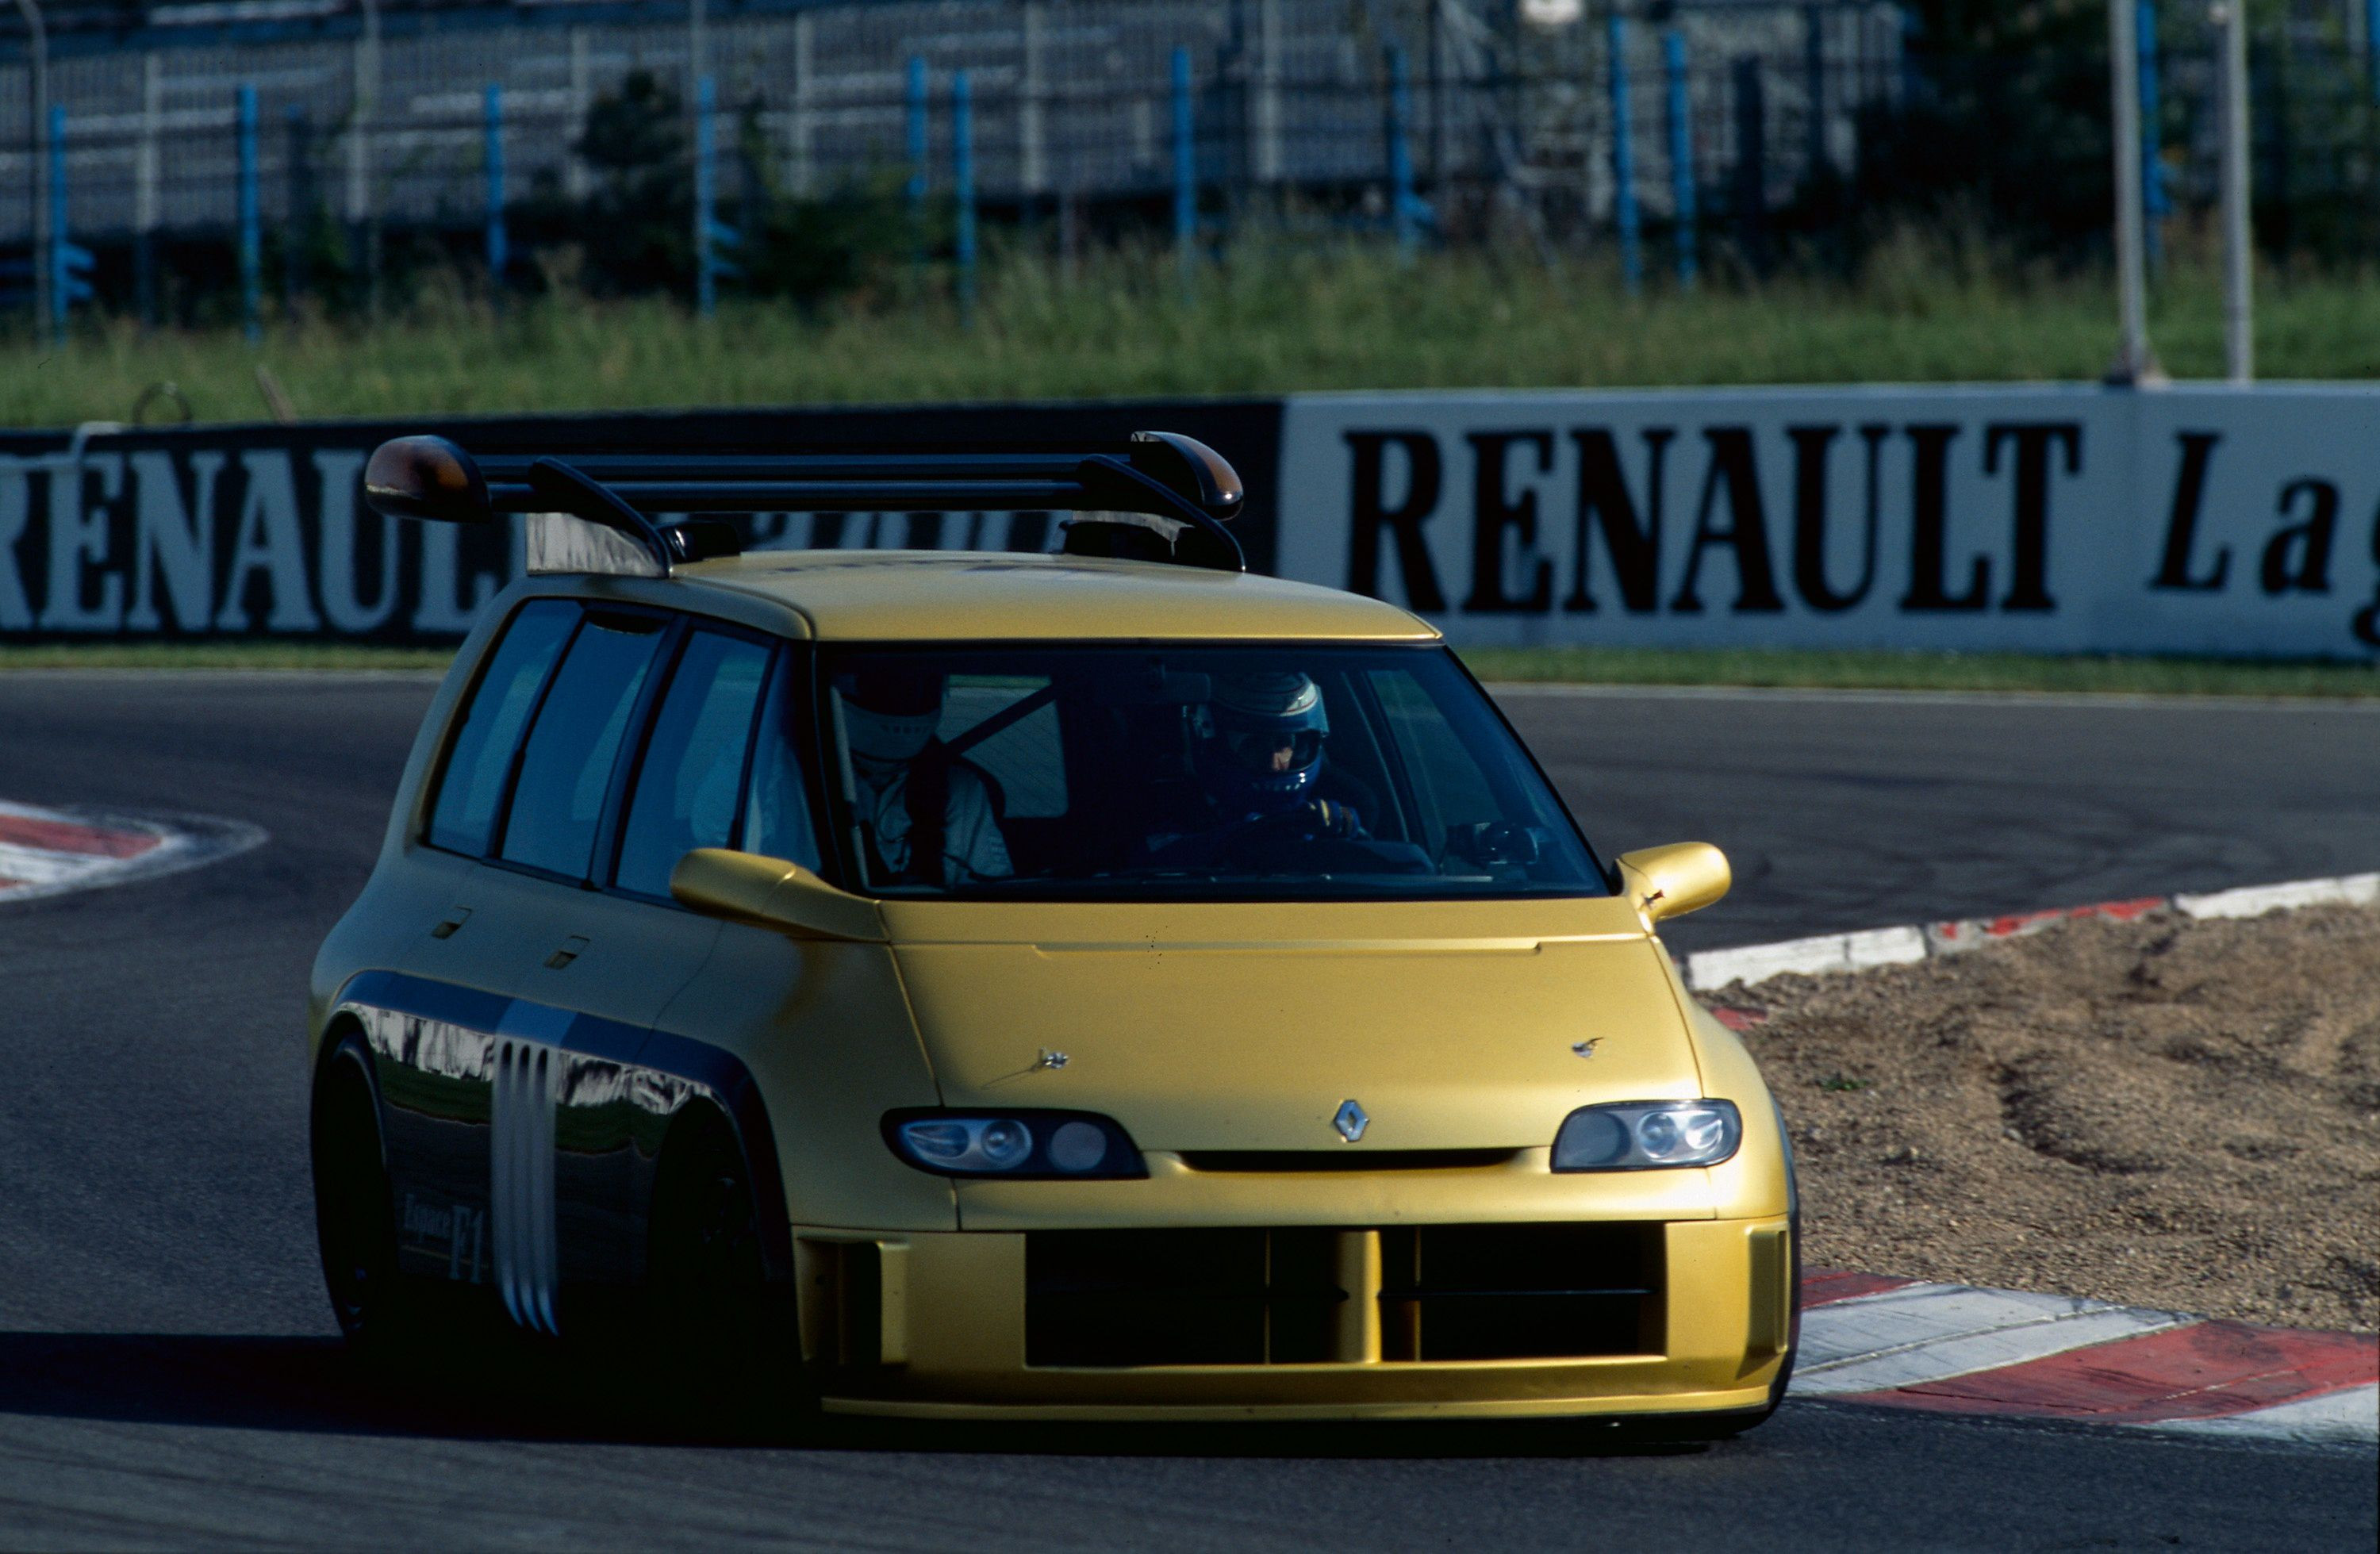 Gold Renault Espace modified into a track car with sports kit driving on a track